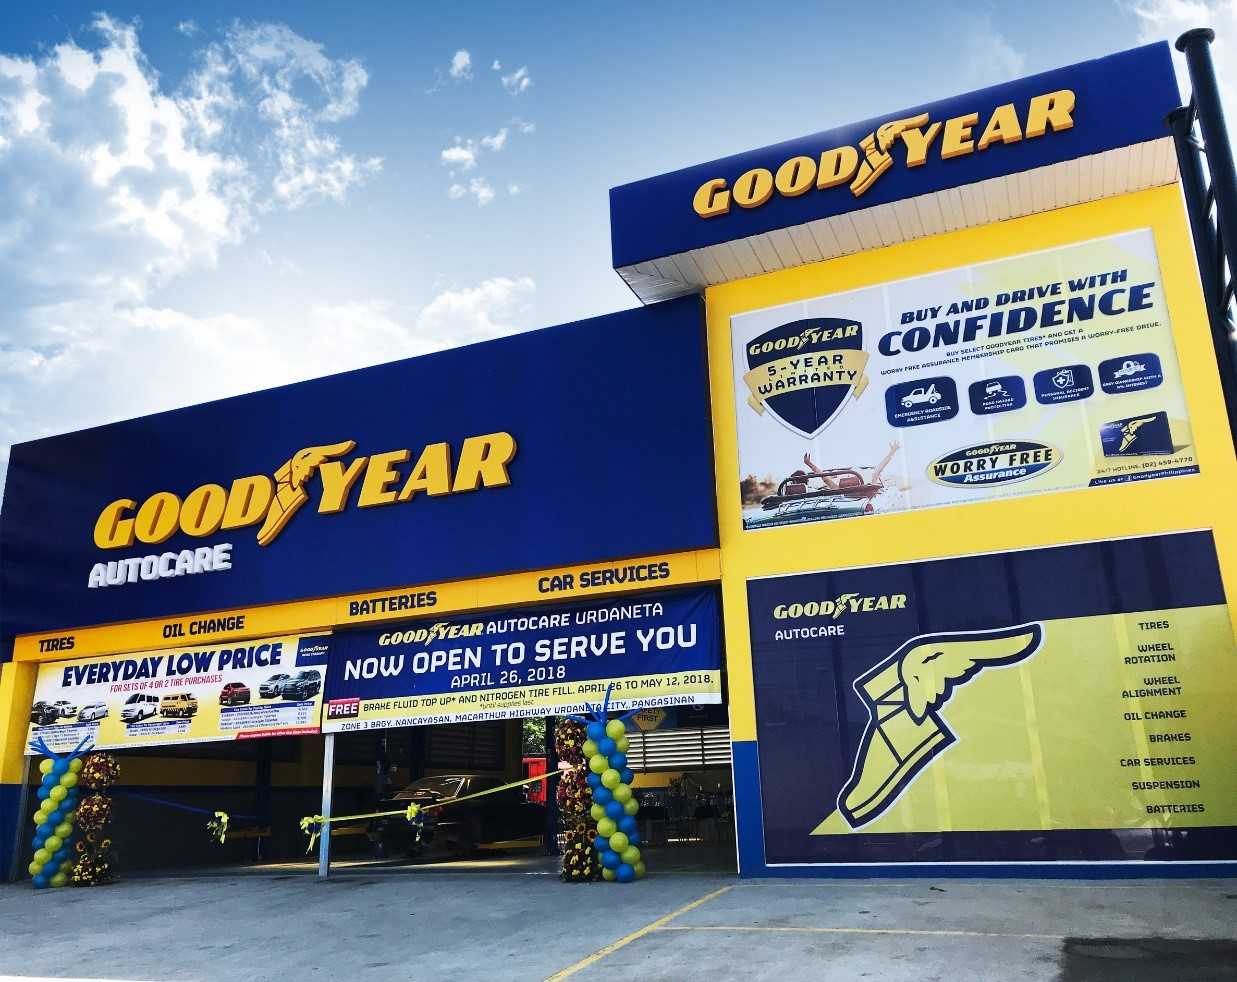 goodyear-ph-autocare